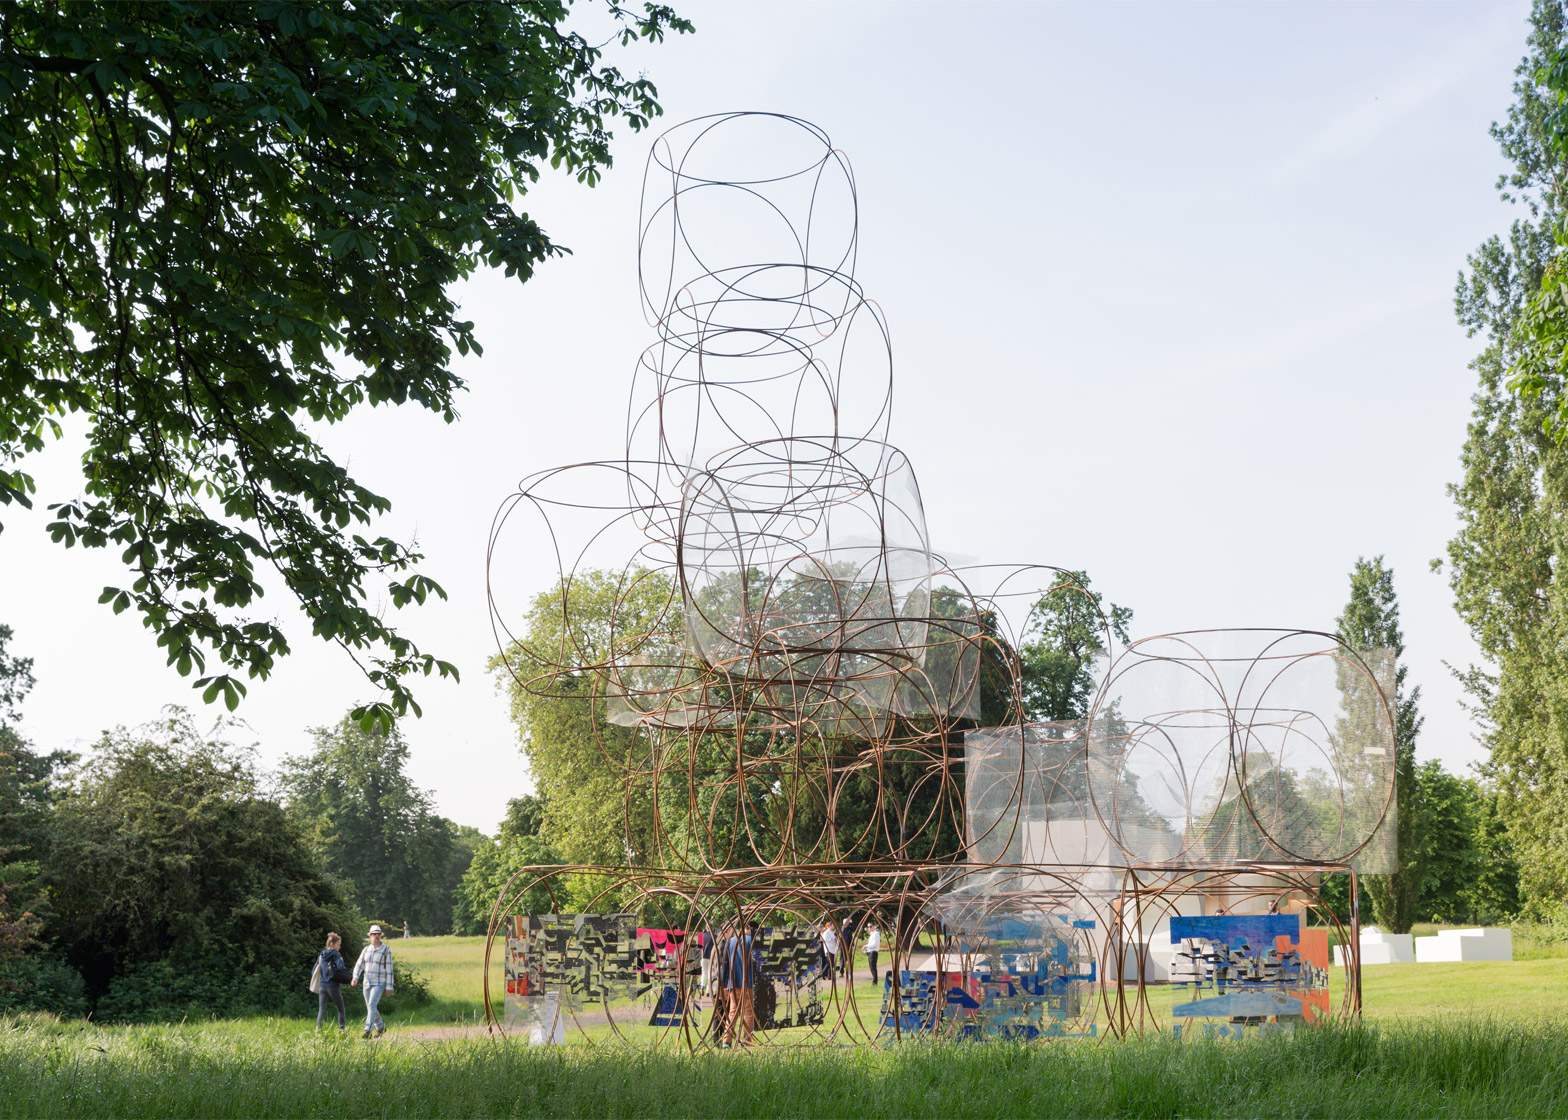 Stupendous Architects Build Summer Houses At The Serpentine Gallery Largest Home Design Picture Inspirations Pitcheantrous